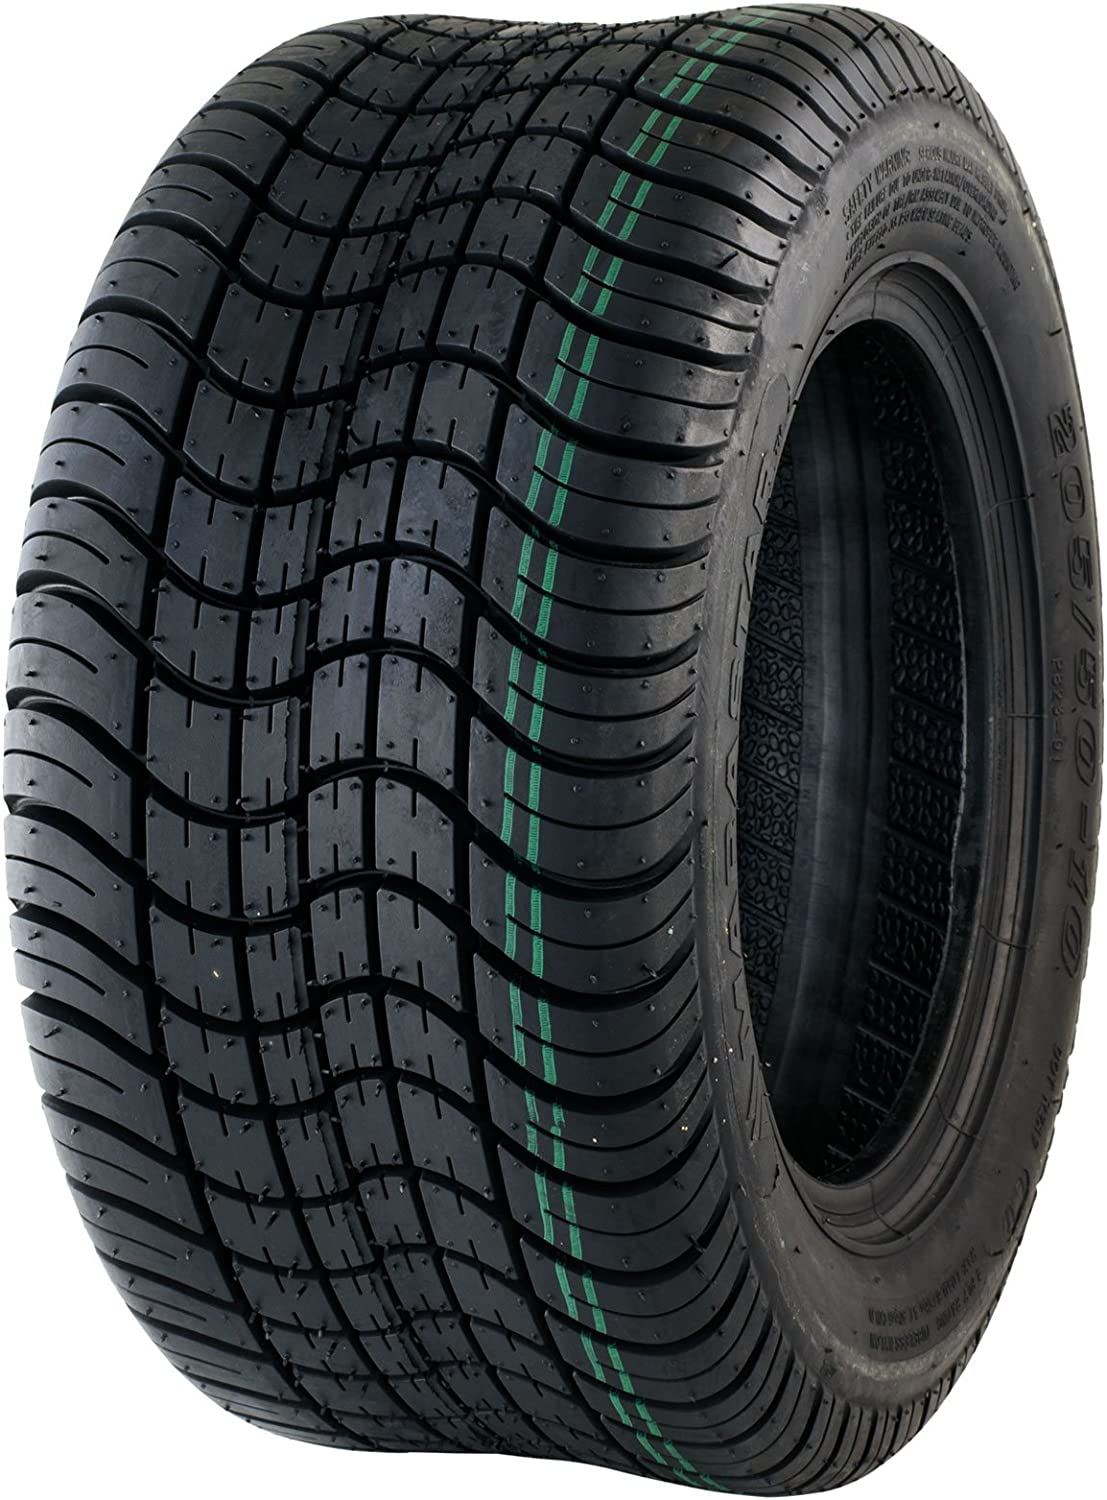 MARASTAR 20510 4 Ply Replacement Golf Cart Tire Only